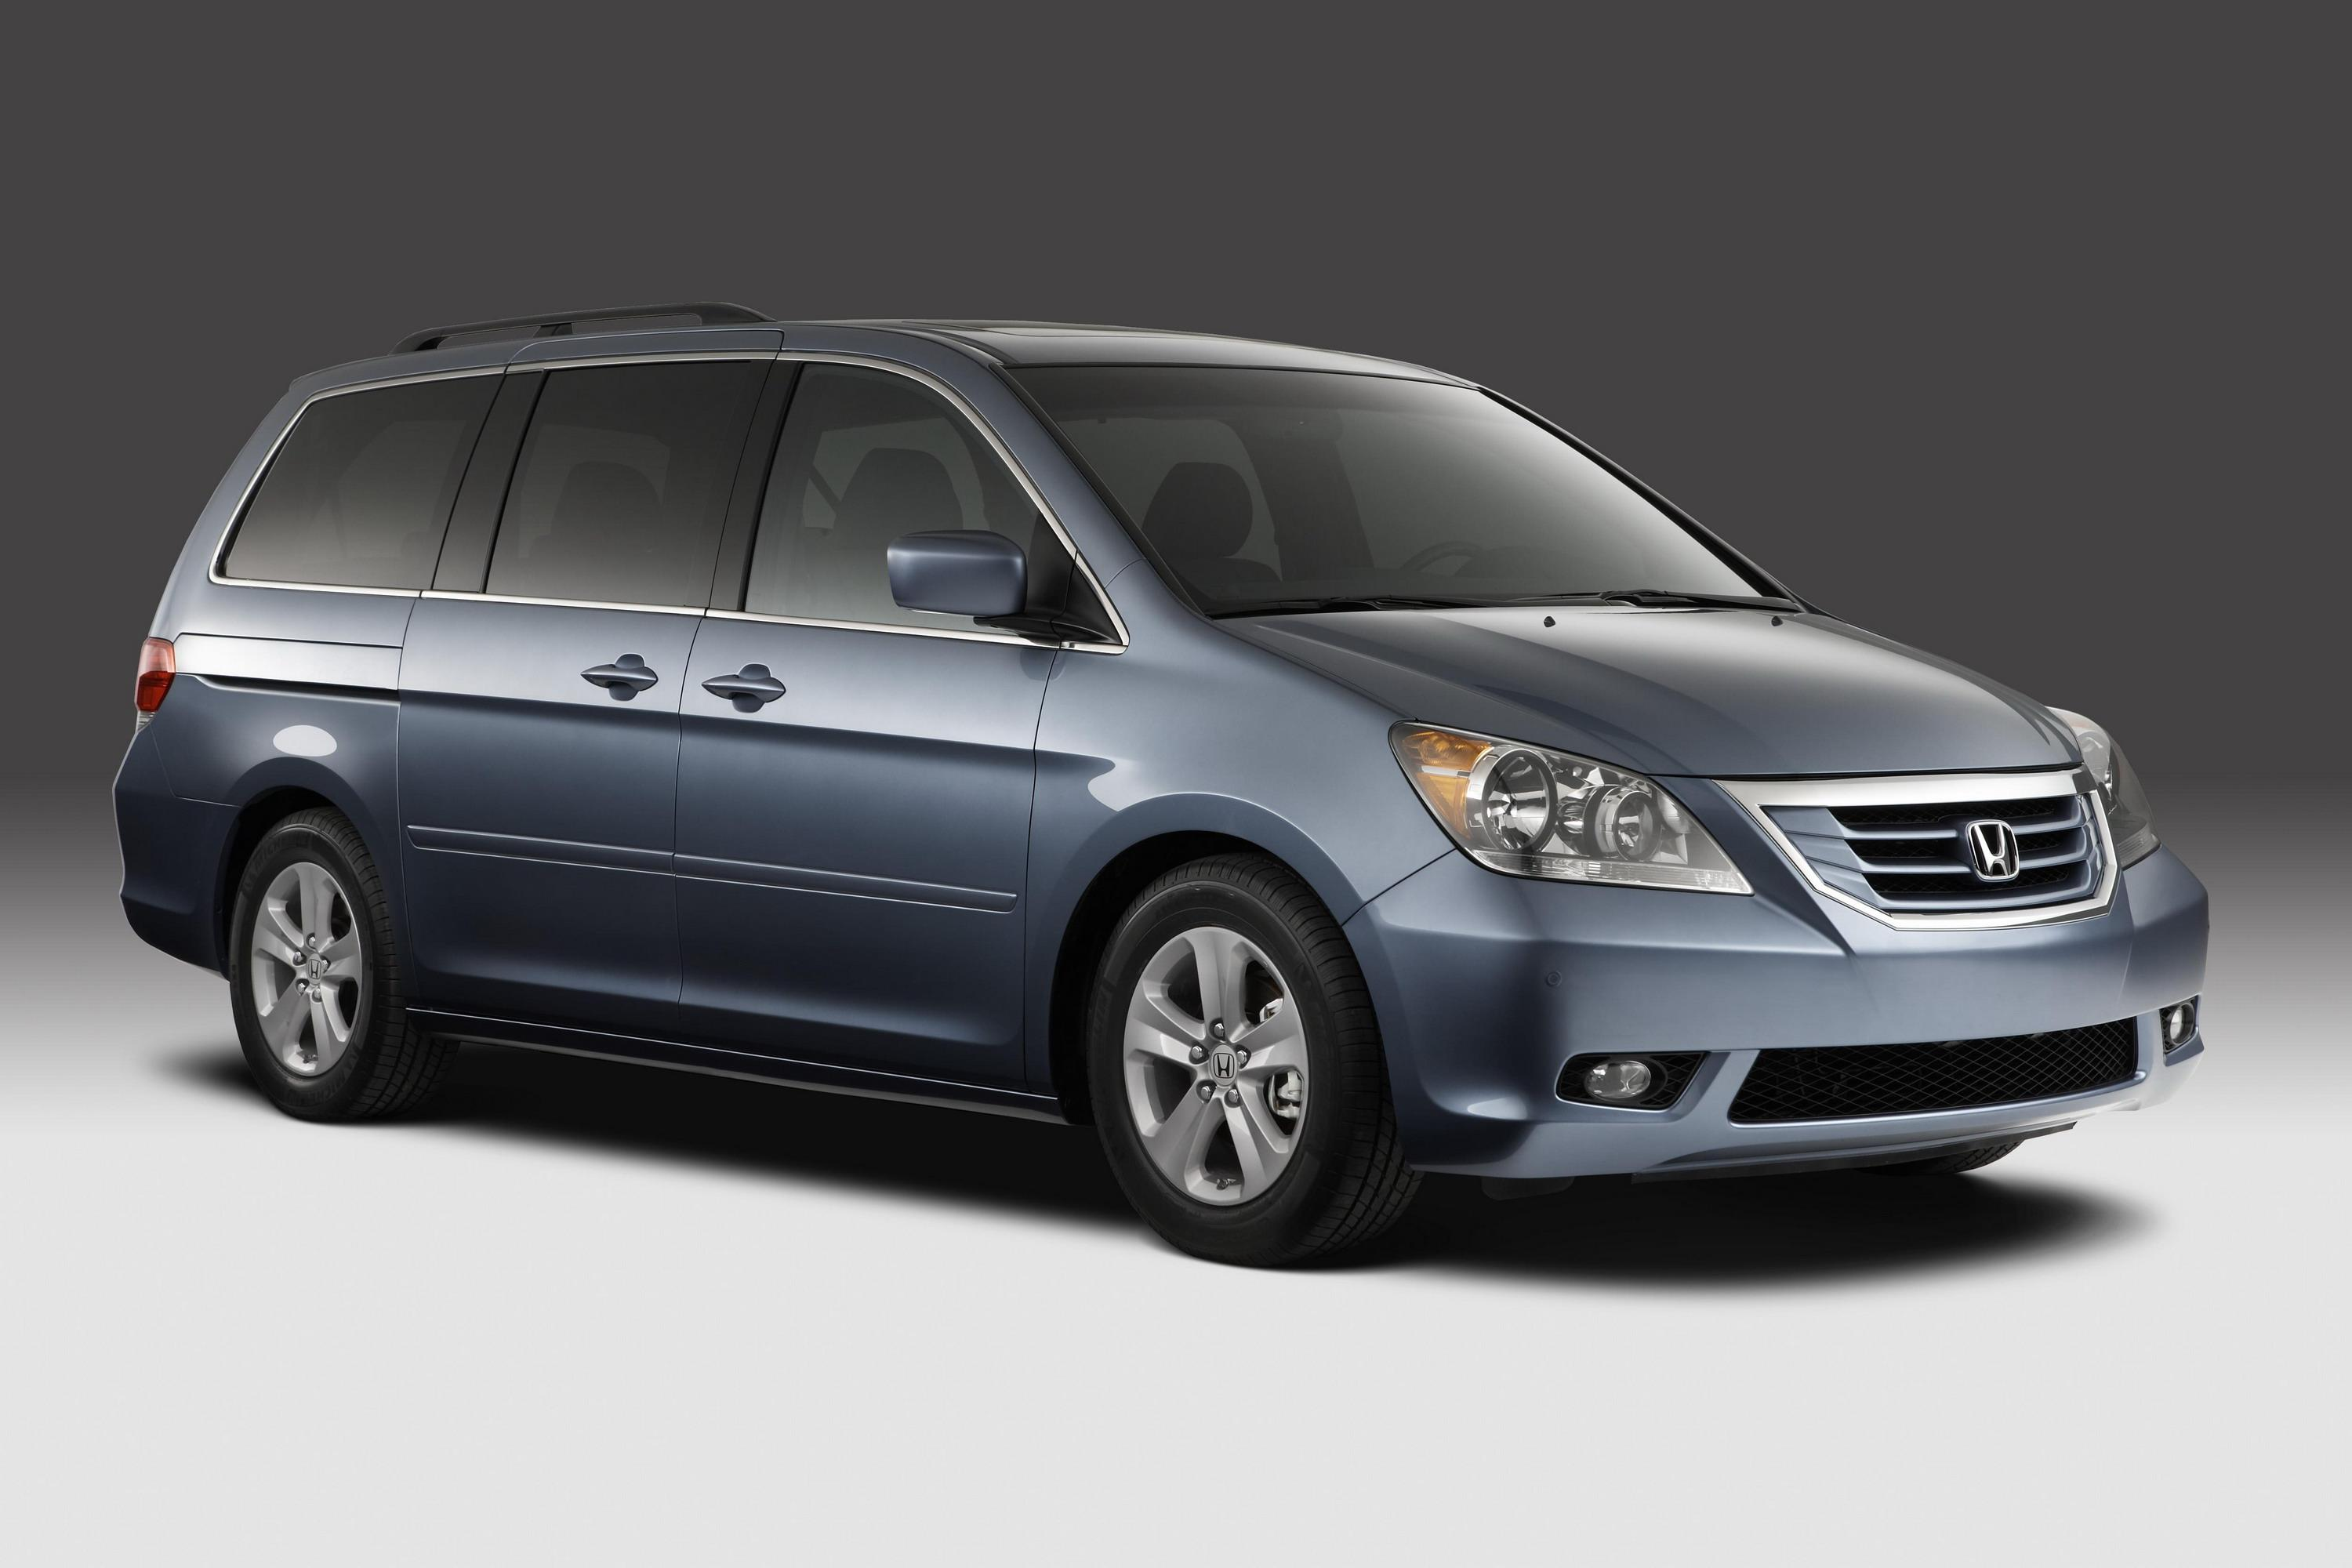 2008 honda odyssey pricing announced news top speed. Black Bedroom Furniture Sets. Home Design Ideas